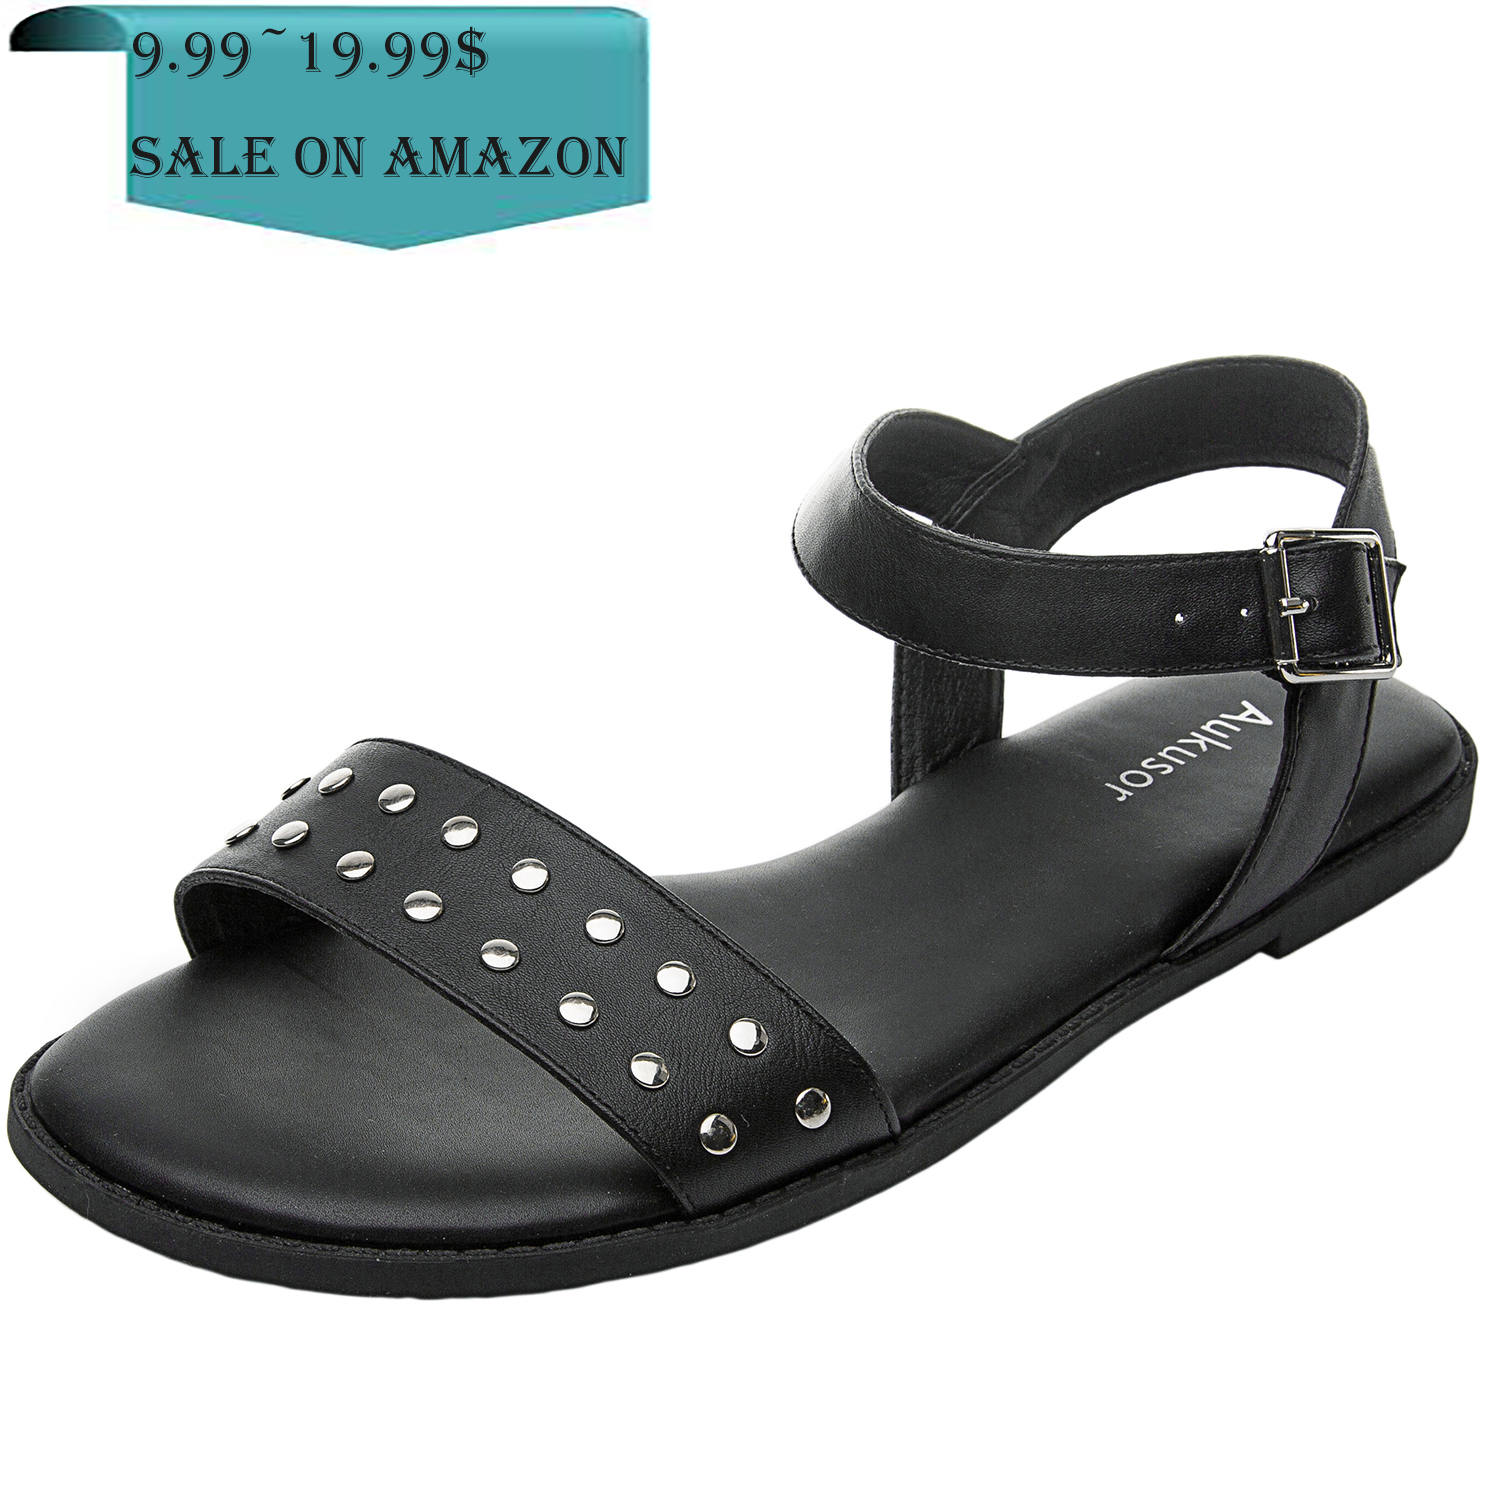 27e0fea385 US$ 29.99 - Women's Wide Width Flat Sandals - Open Toe One Band Ankle Strap  Flexible Buckle Gladiator Casual Summer Shoes - www.luoika-us.com